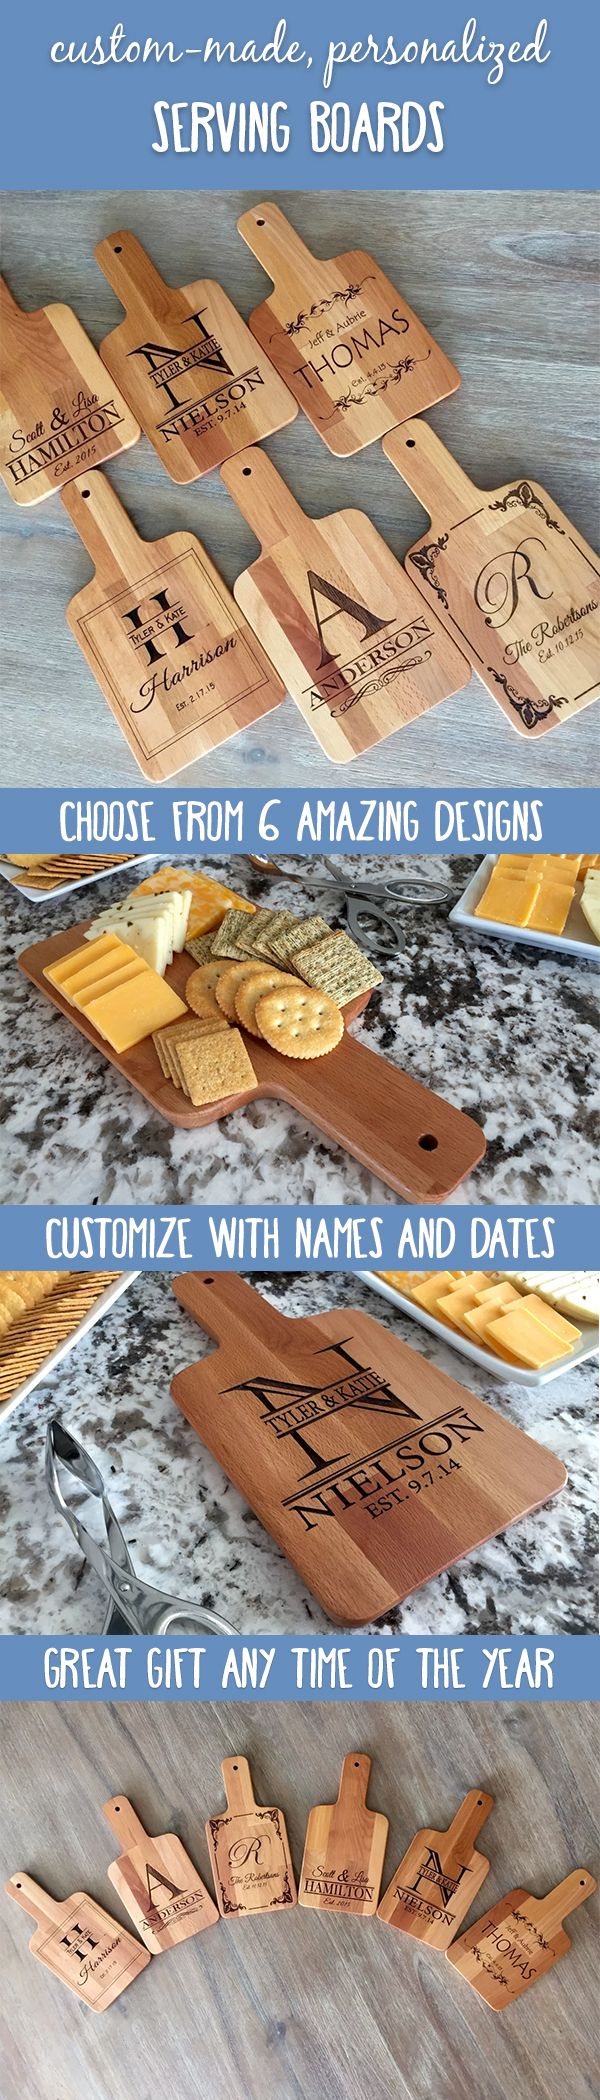 For a limited time, get HALF off your purchase! It's the perfect opportunity to order one for everyone you know. Choose from 6 beautiful designs and add your custom names and dates. They will look beautiful in your home whether on display or while in use. The serving boards each have a hole drilled through the end of the handle perfect for hanging in any location! They also make perfect gifts anytime of the year.